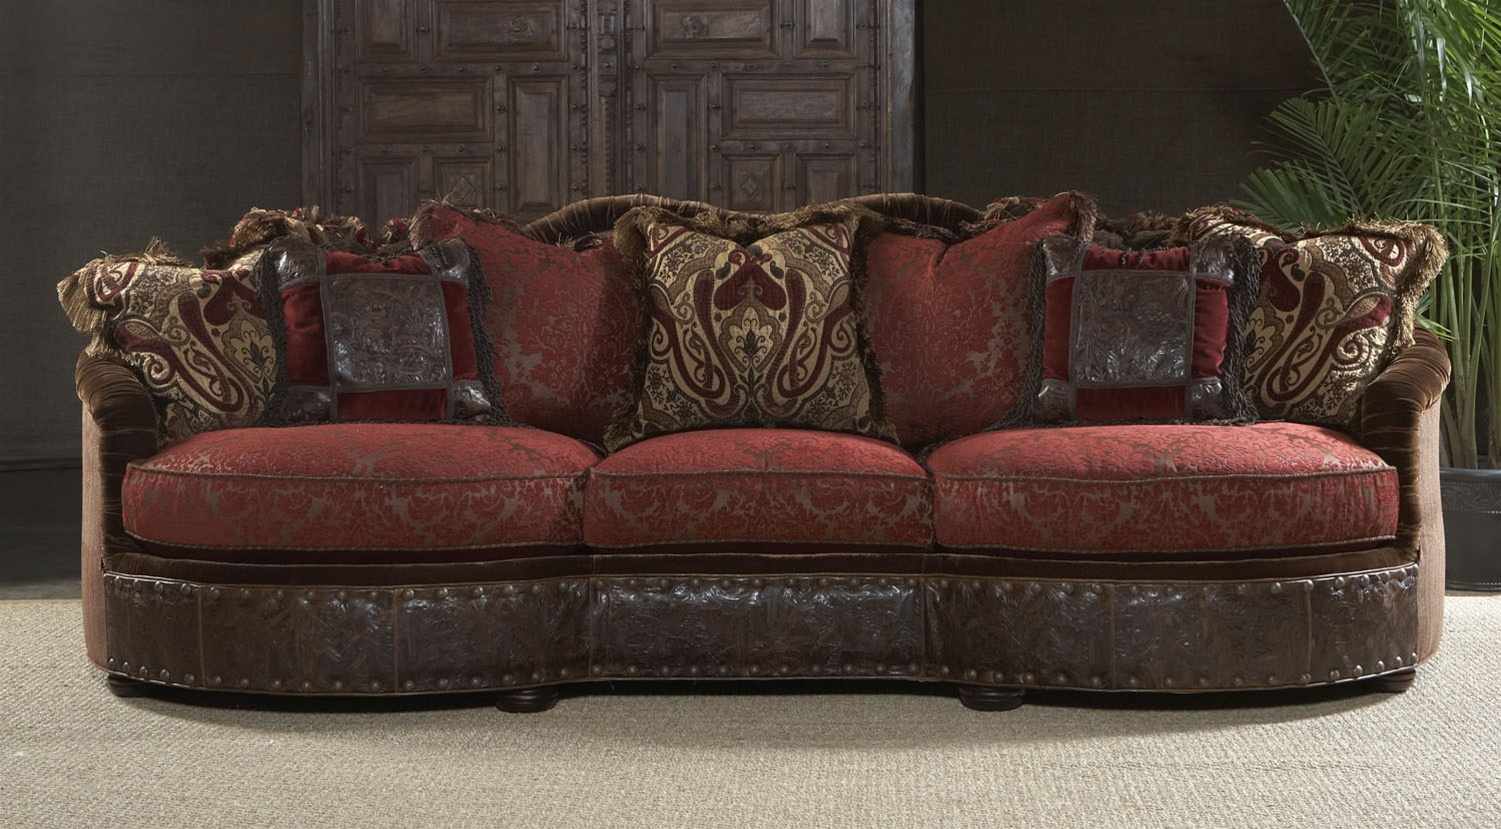 Luxury red burgundy sofa or couch for Couch und sofa